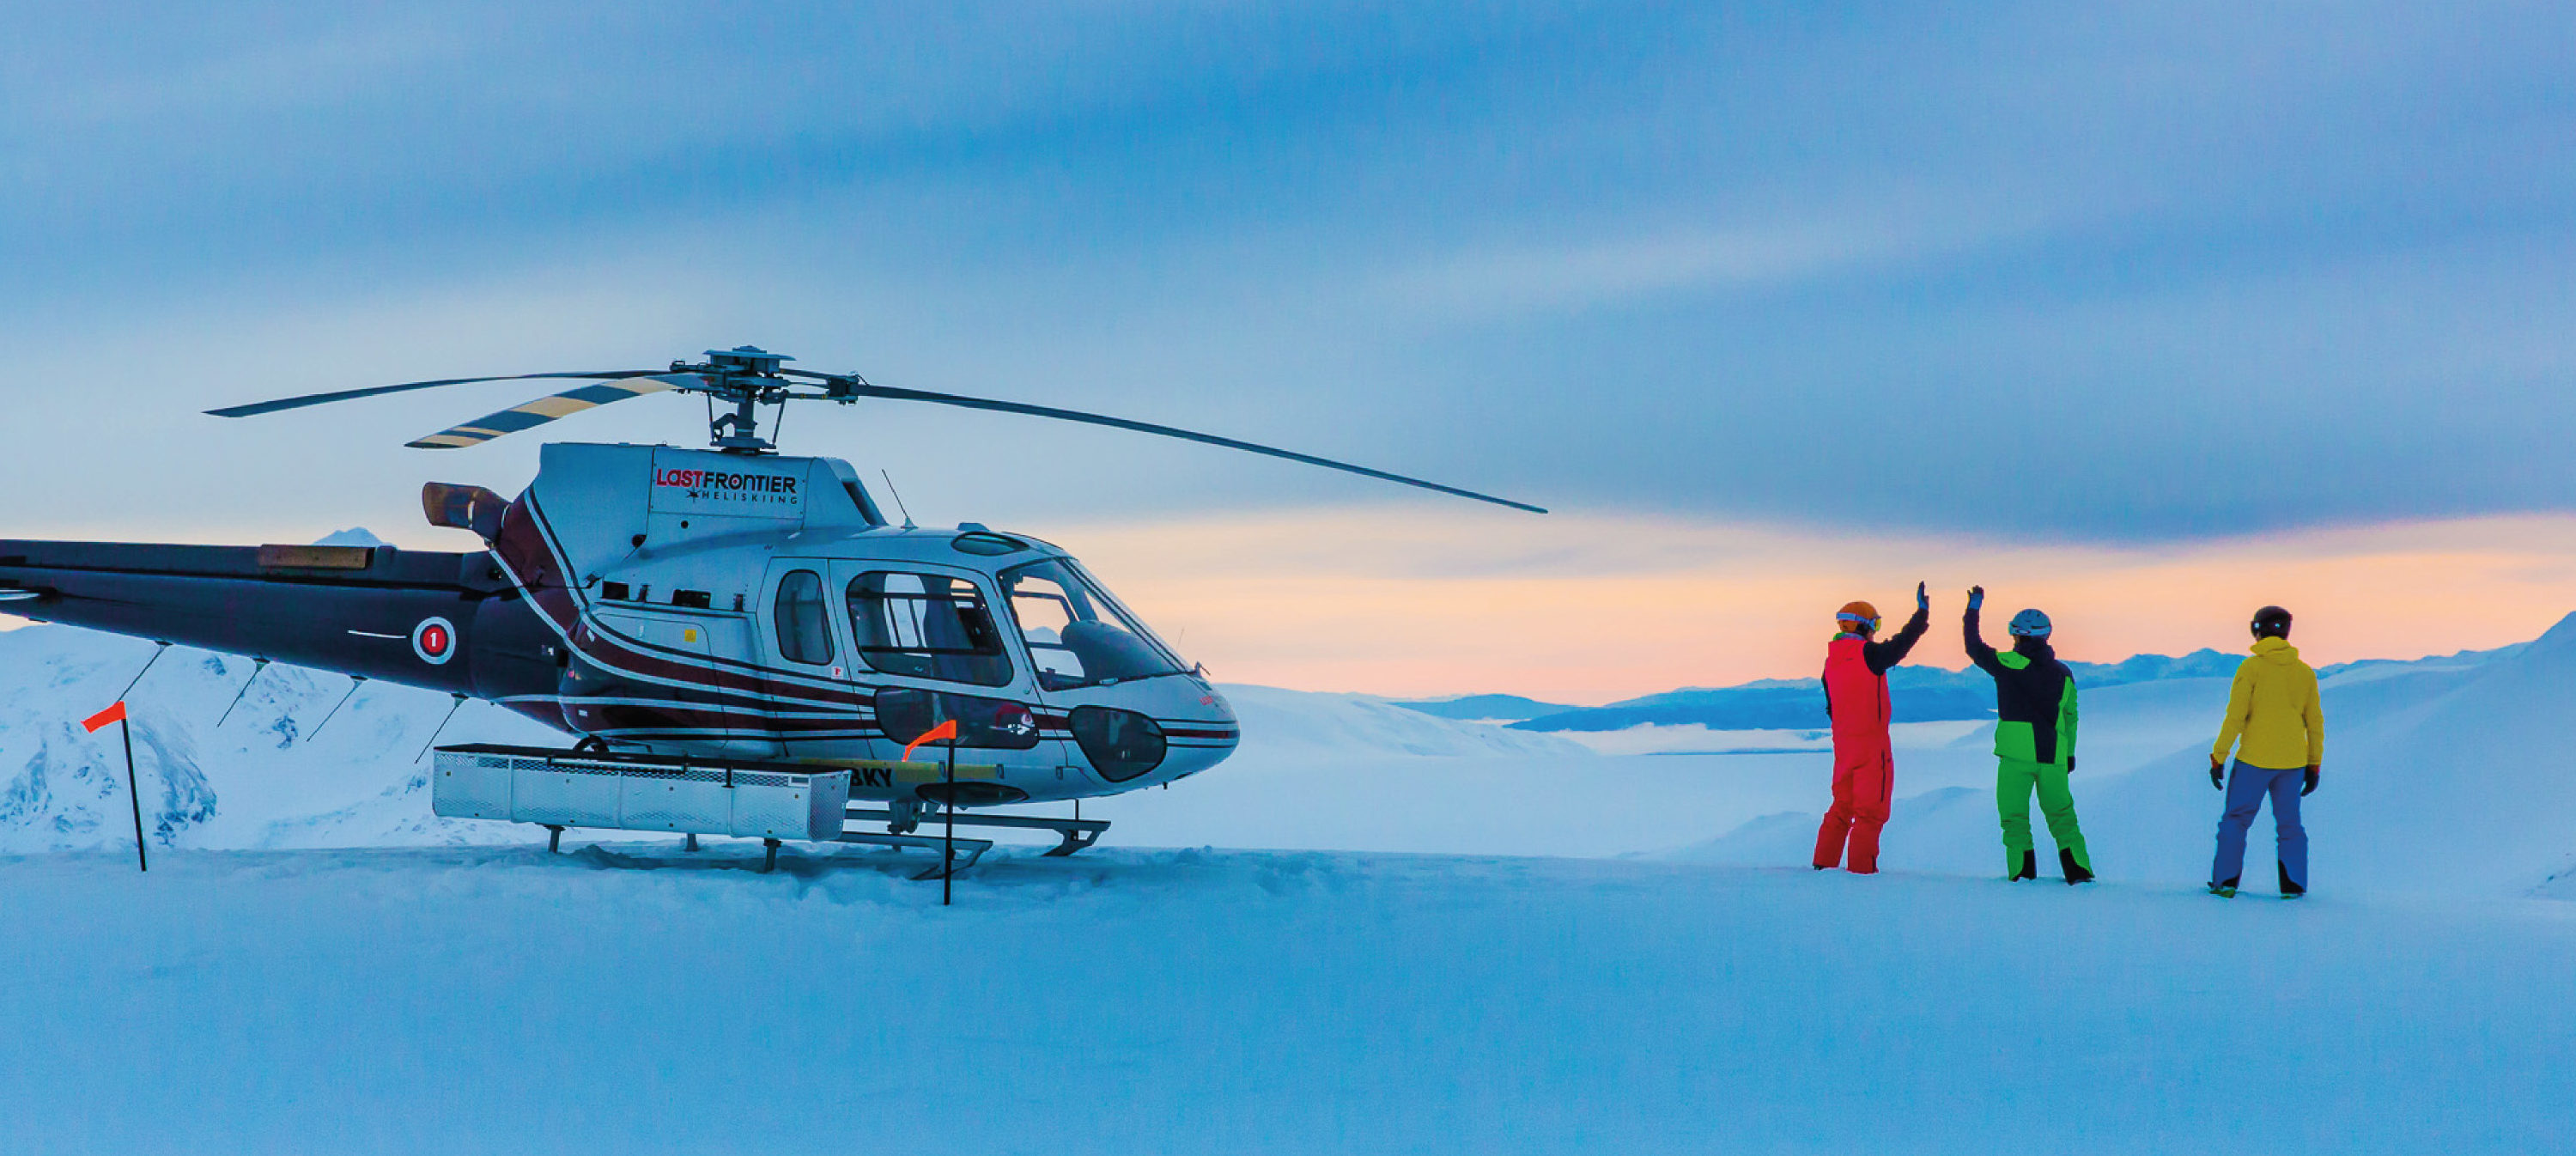 Heliskiing in British Columbia - Helicopter and skiers on mountain